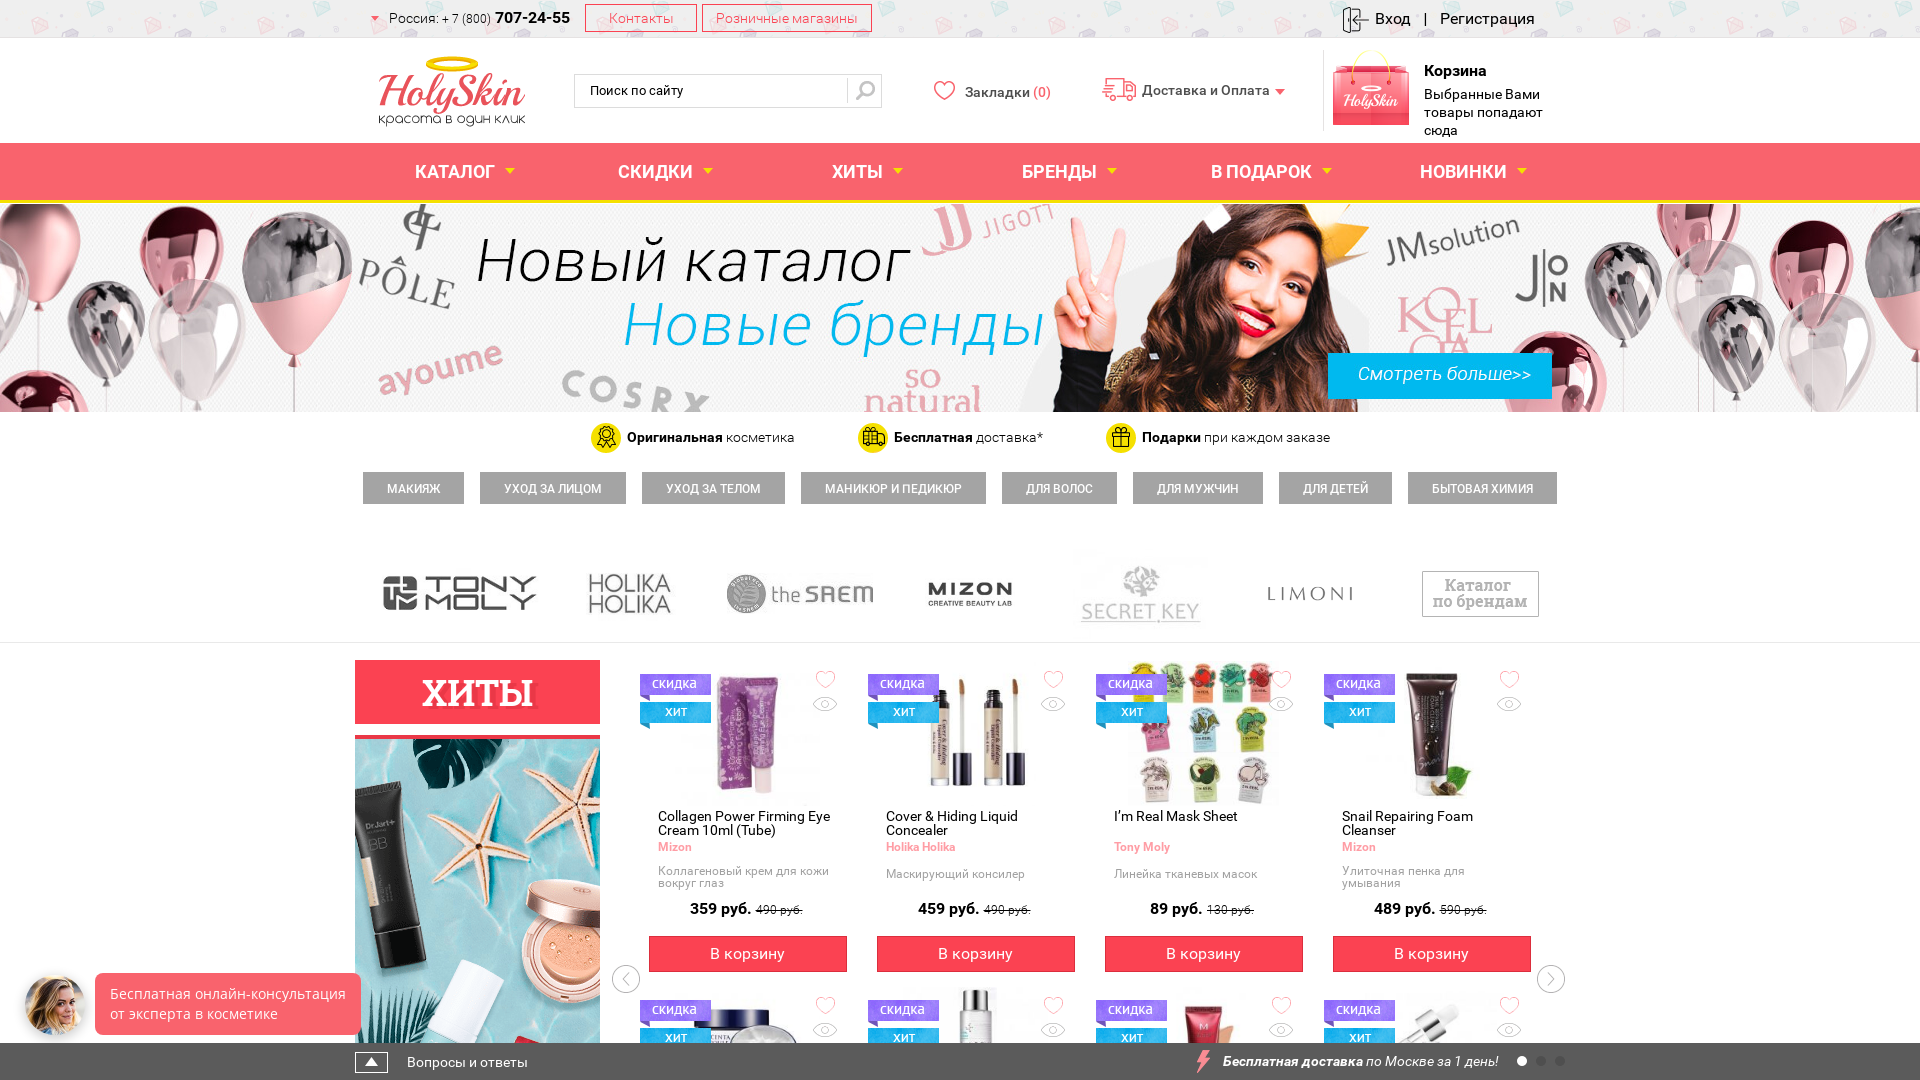 HolySkin website